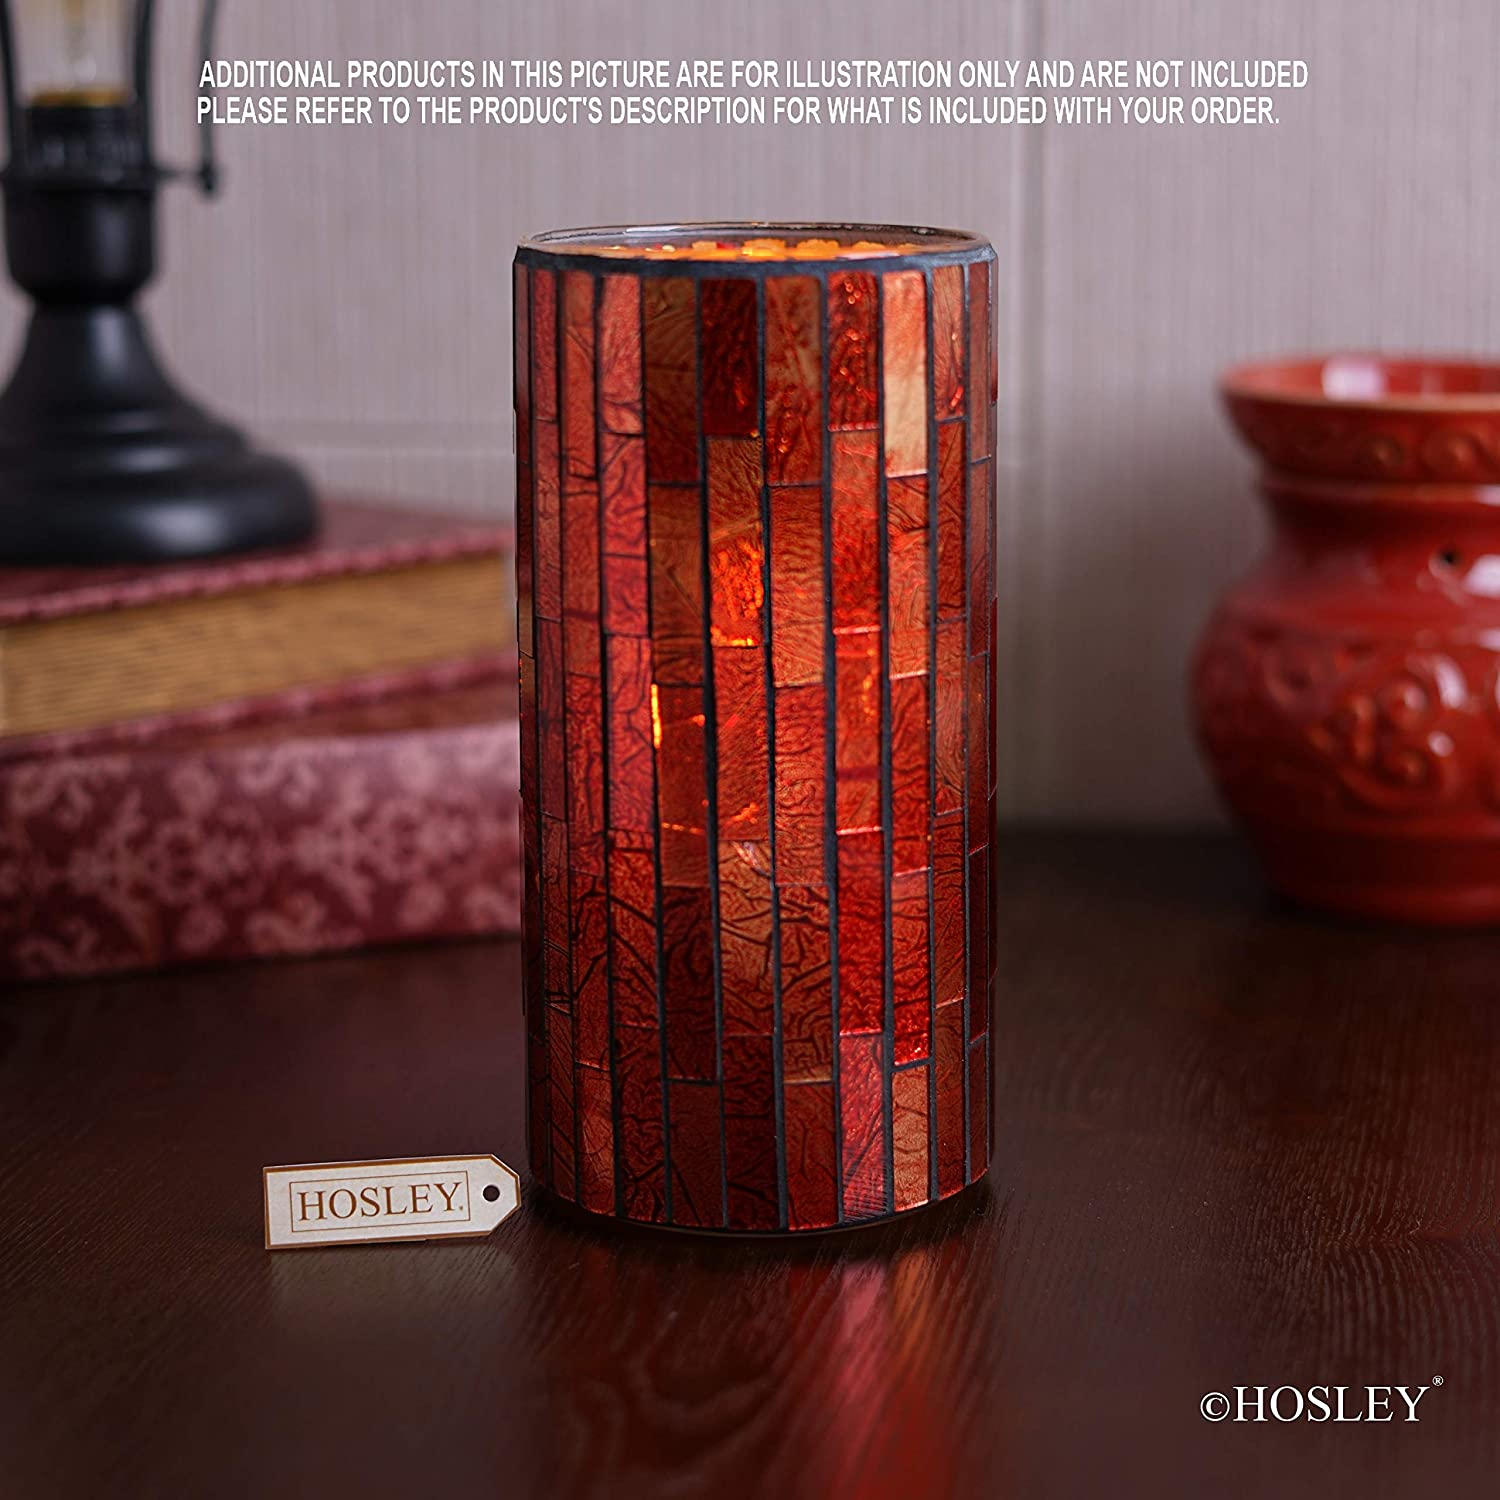 Hosley Mosaic Glass Tea Light Candle Holder Your Choice of Colors and Size Ideal Gift for Wedding Party Favor Spa Home Bridal Reiki Meditation O7 A-Red, 3.5 High